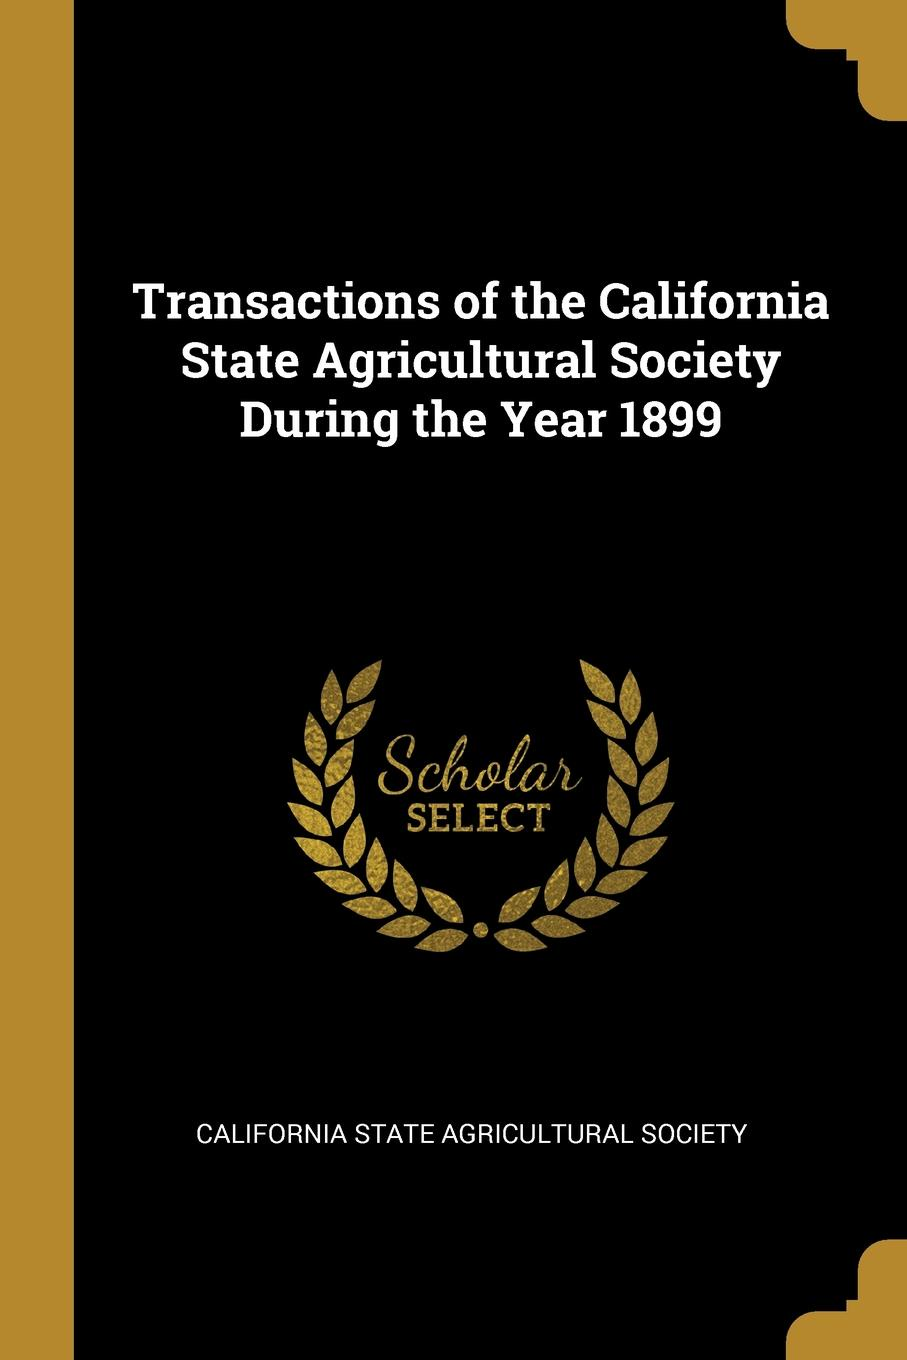 California State Agricultural Society Transactions of the California State Agricultural Society During the Year 1899